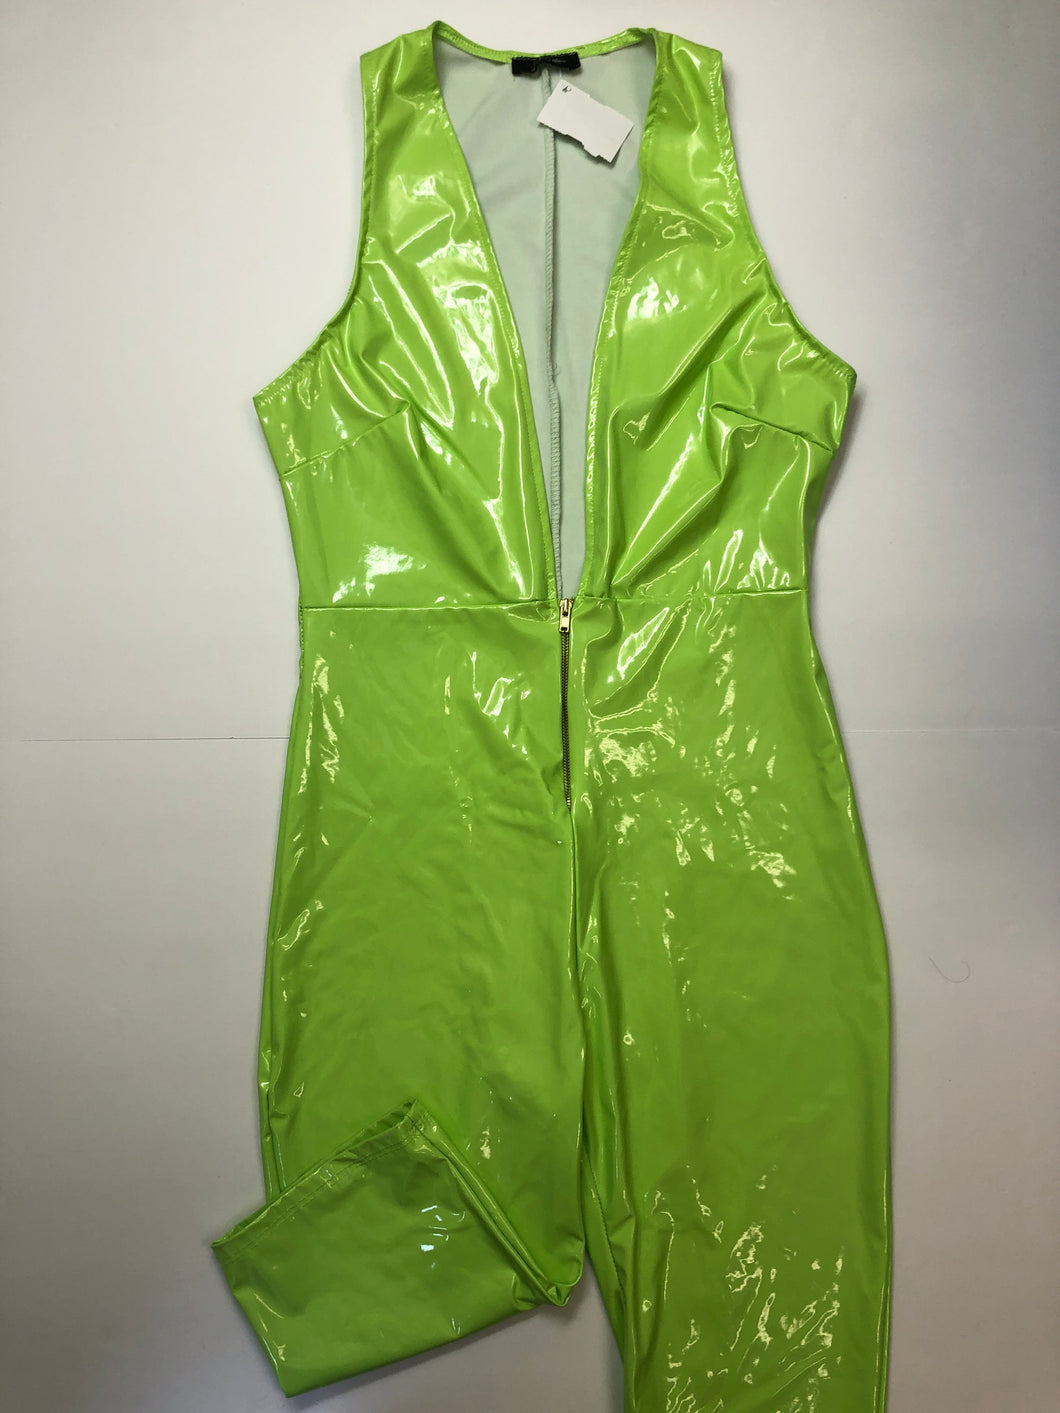 Gently Used Women's Jade Romper Size M